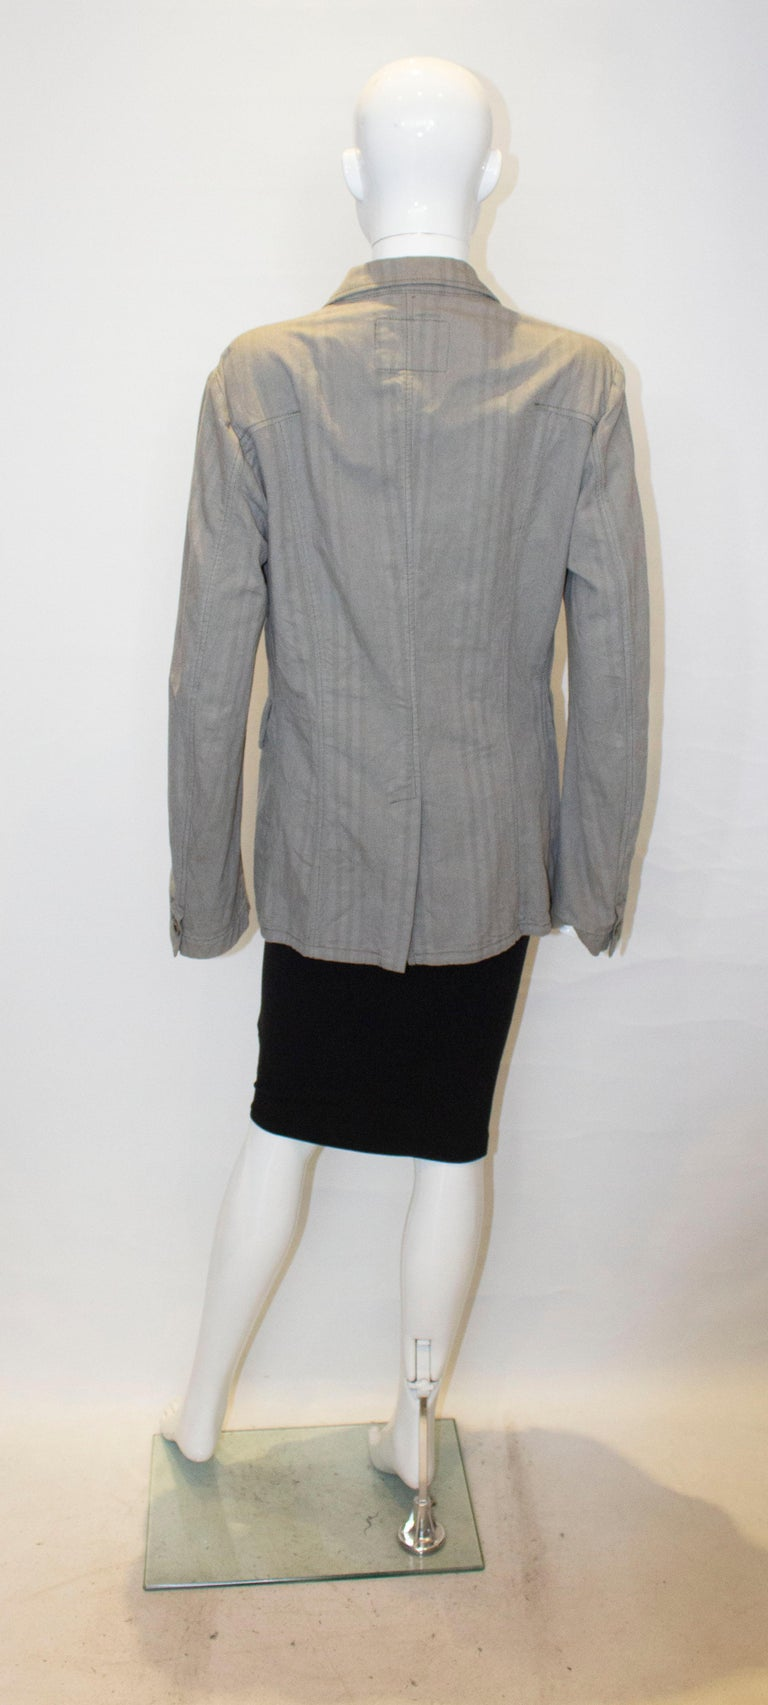 Marithe and Francois Girbaud Mens Jacket For Sale 2